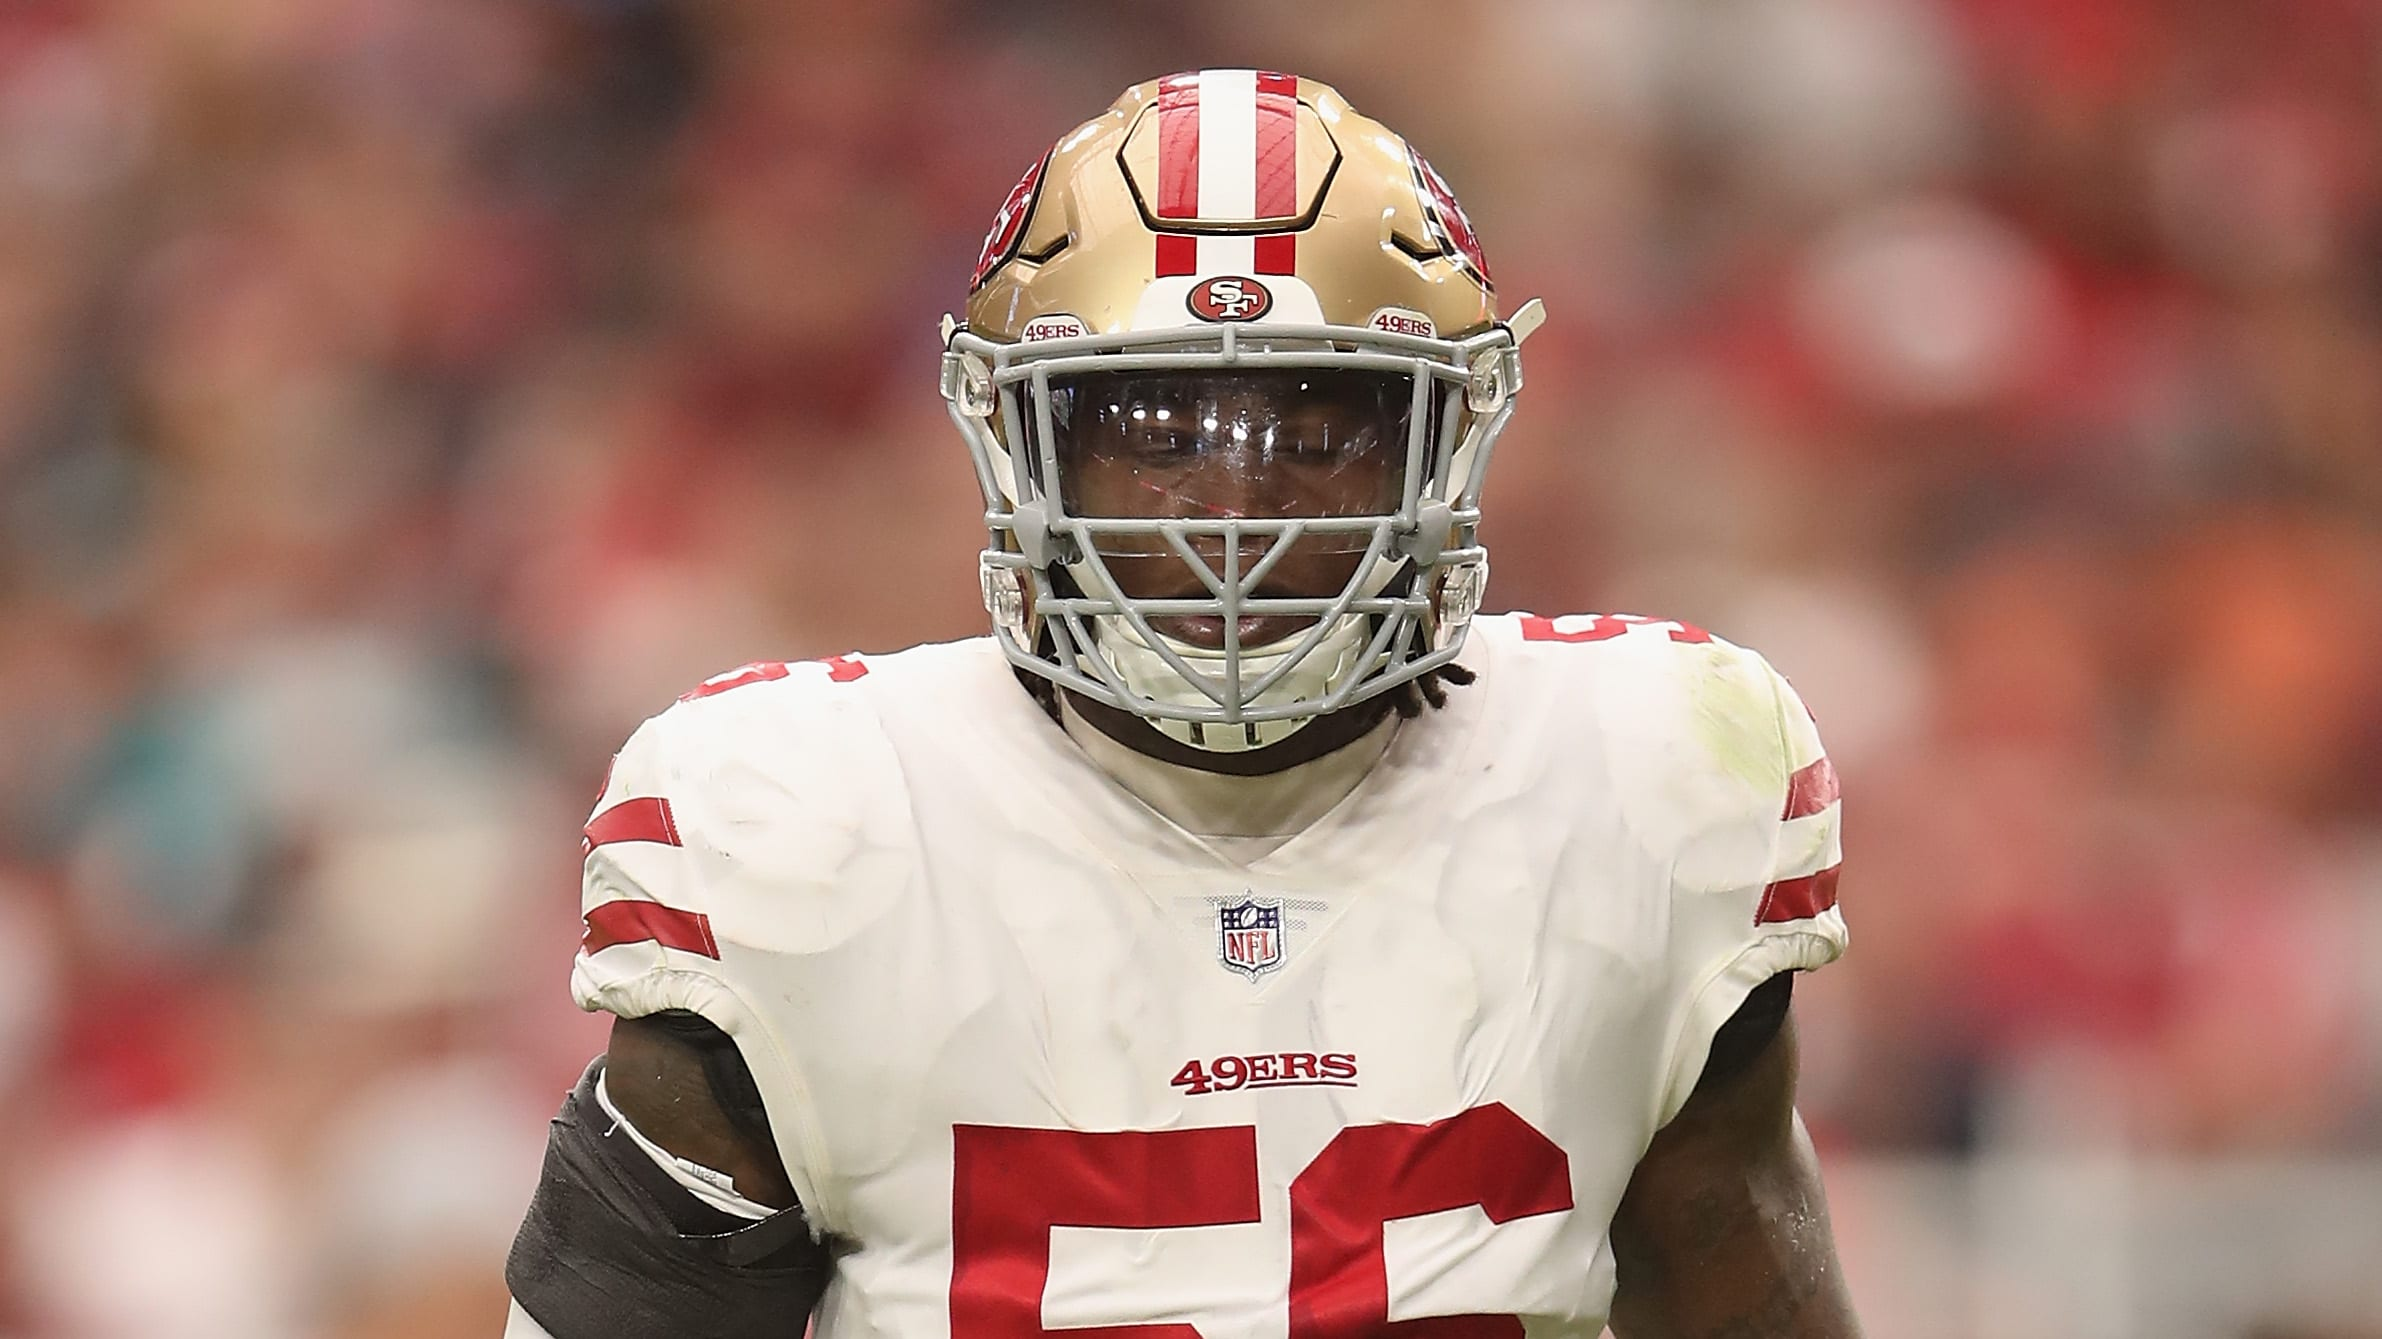 GLENDALE, AZ - OCTOBER 28:  Linebacker Reuben Foster #56 of the San Francisco 49ers during the NFL game against the Arizona Cardinals at State Farm Stadium on October 28, 2018 in Glendale, Arizona.  The Cardinals defeated the 49ers 18-15.  (Photo by Christian Petersen/Getty Images)